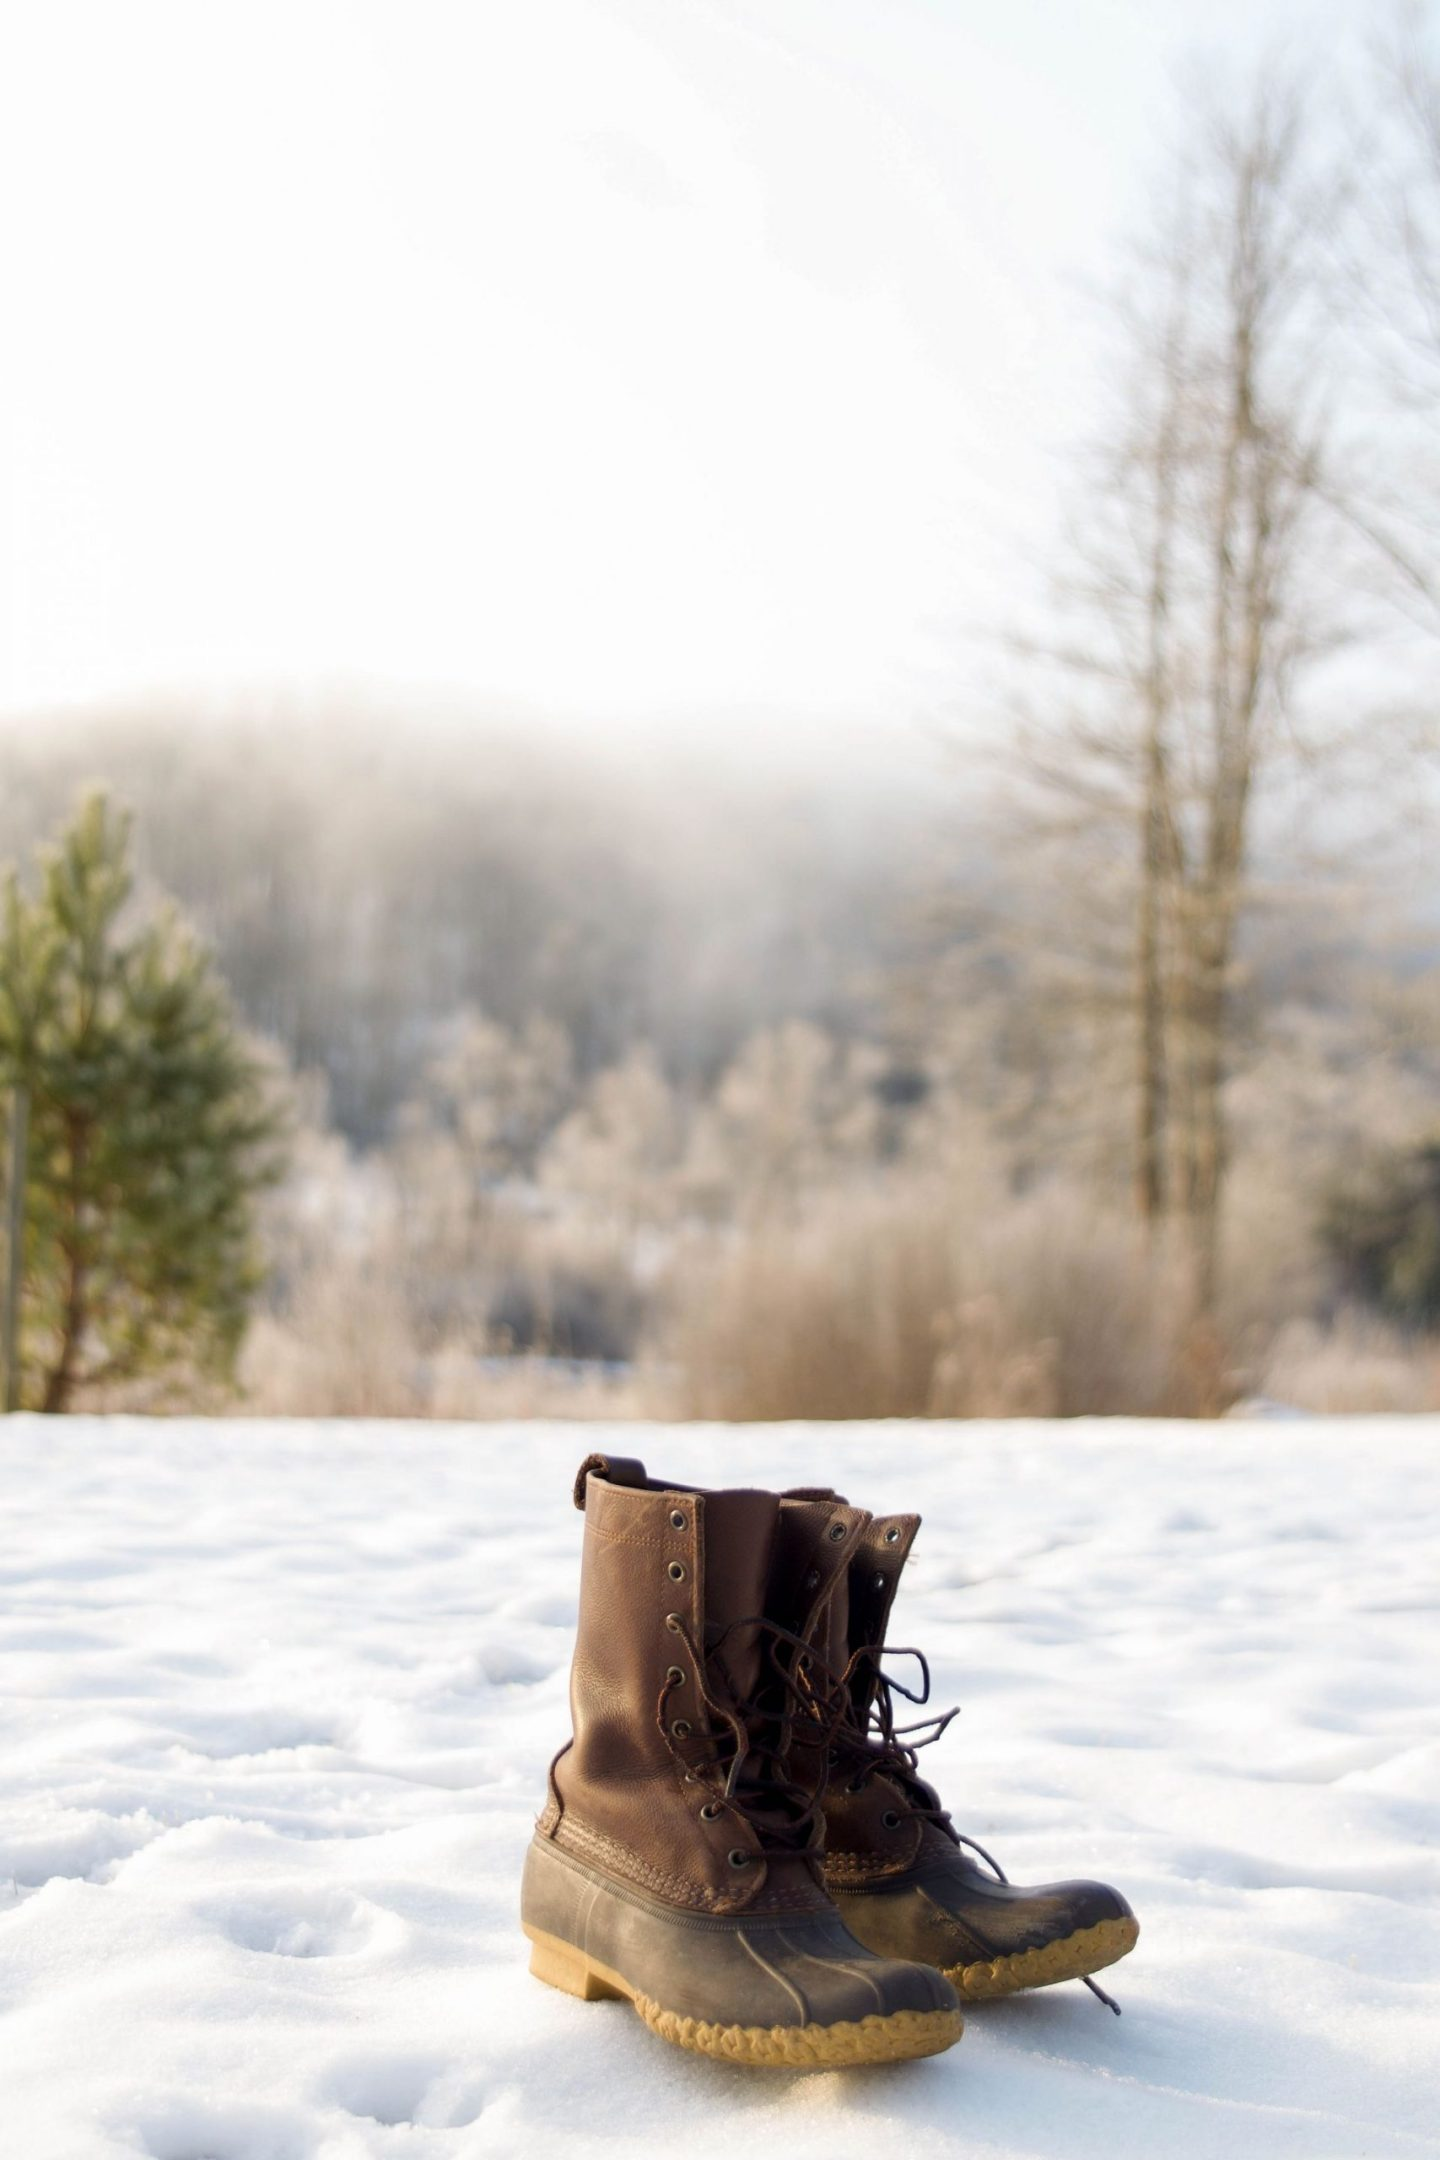 maine hunting shoe review - l.l.bean maine hunting shoe - bean boot review